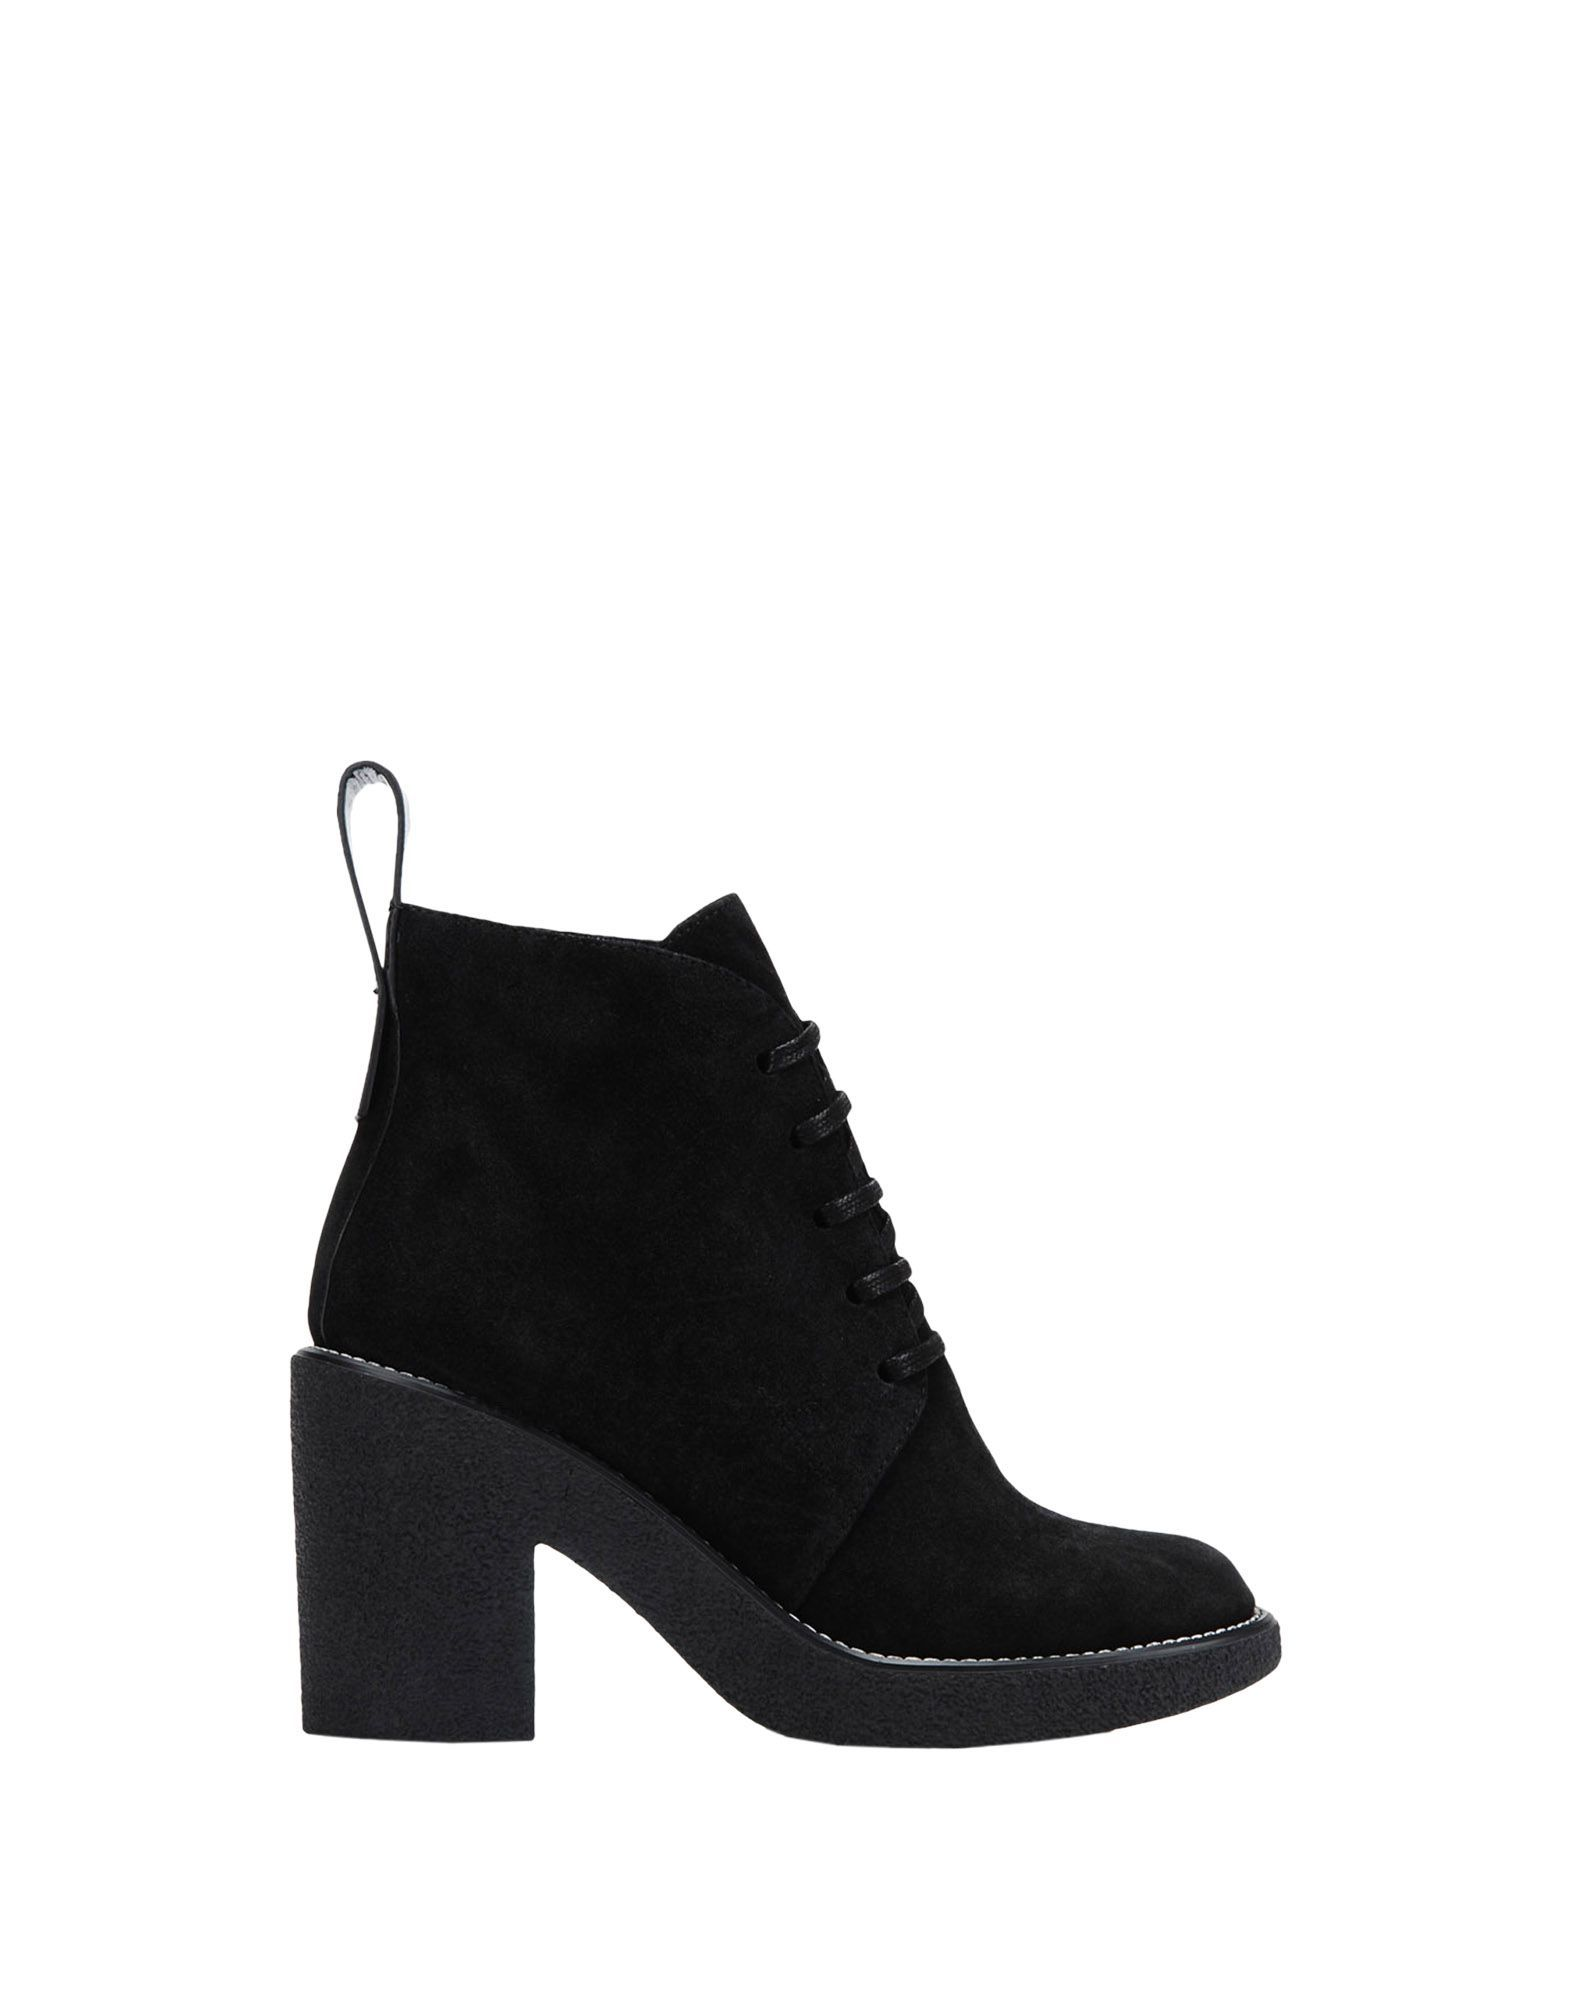 Jil Sander Navy Black Calf Leather Lace Up Ankle Boots